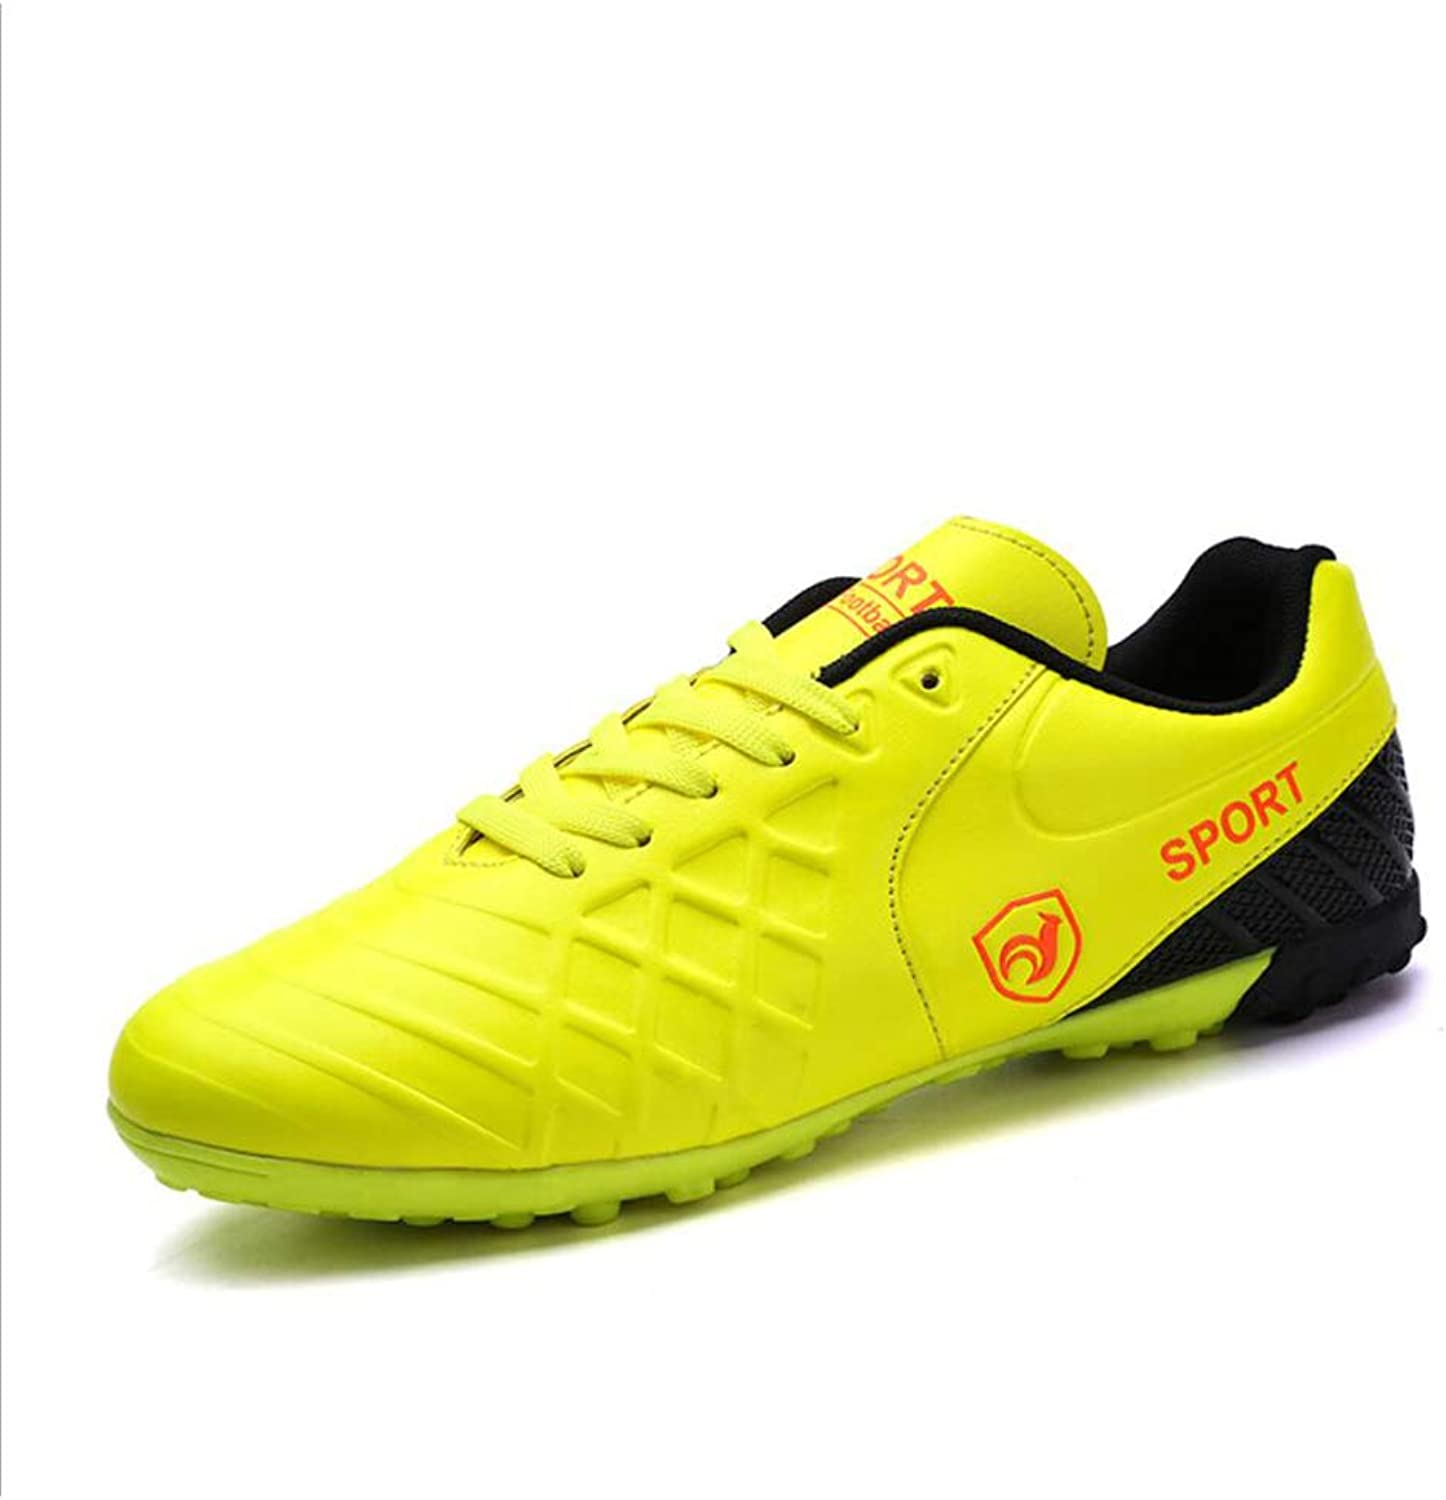 Men's Soccer shoes Personalityn Soccer Cleats Football Boots Football Soccer Anti-Slip,Low-Top Women's Sneakers,Short Spike Training shoes (color   A, Size   42)